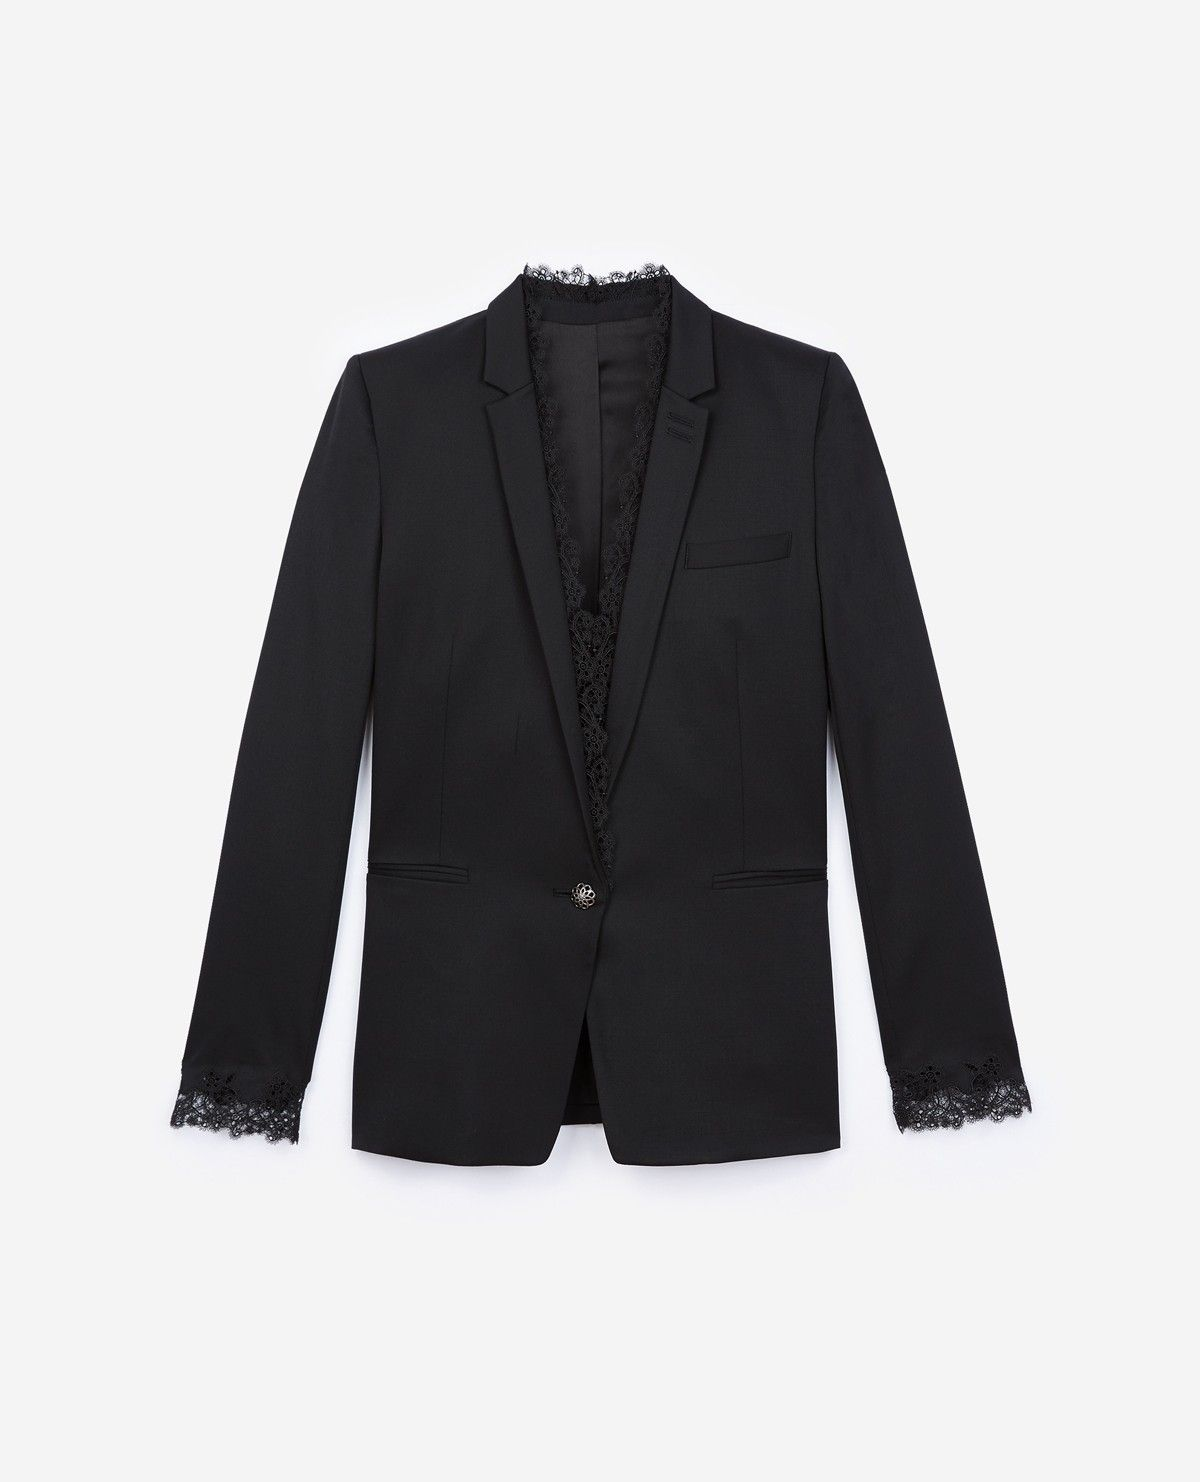 Veste blazer homme the kooples